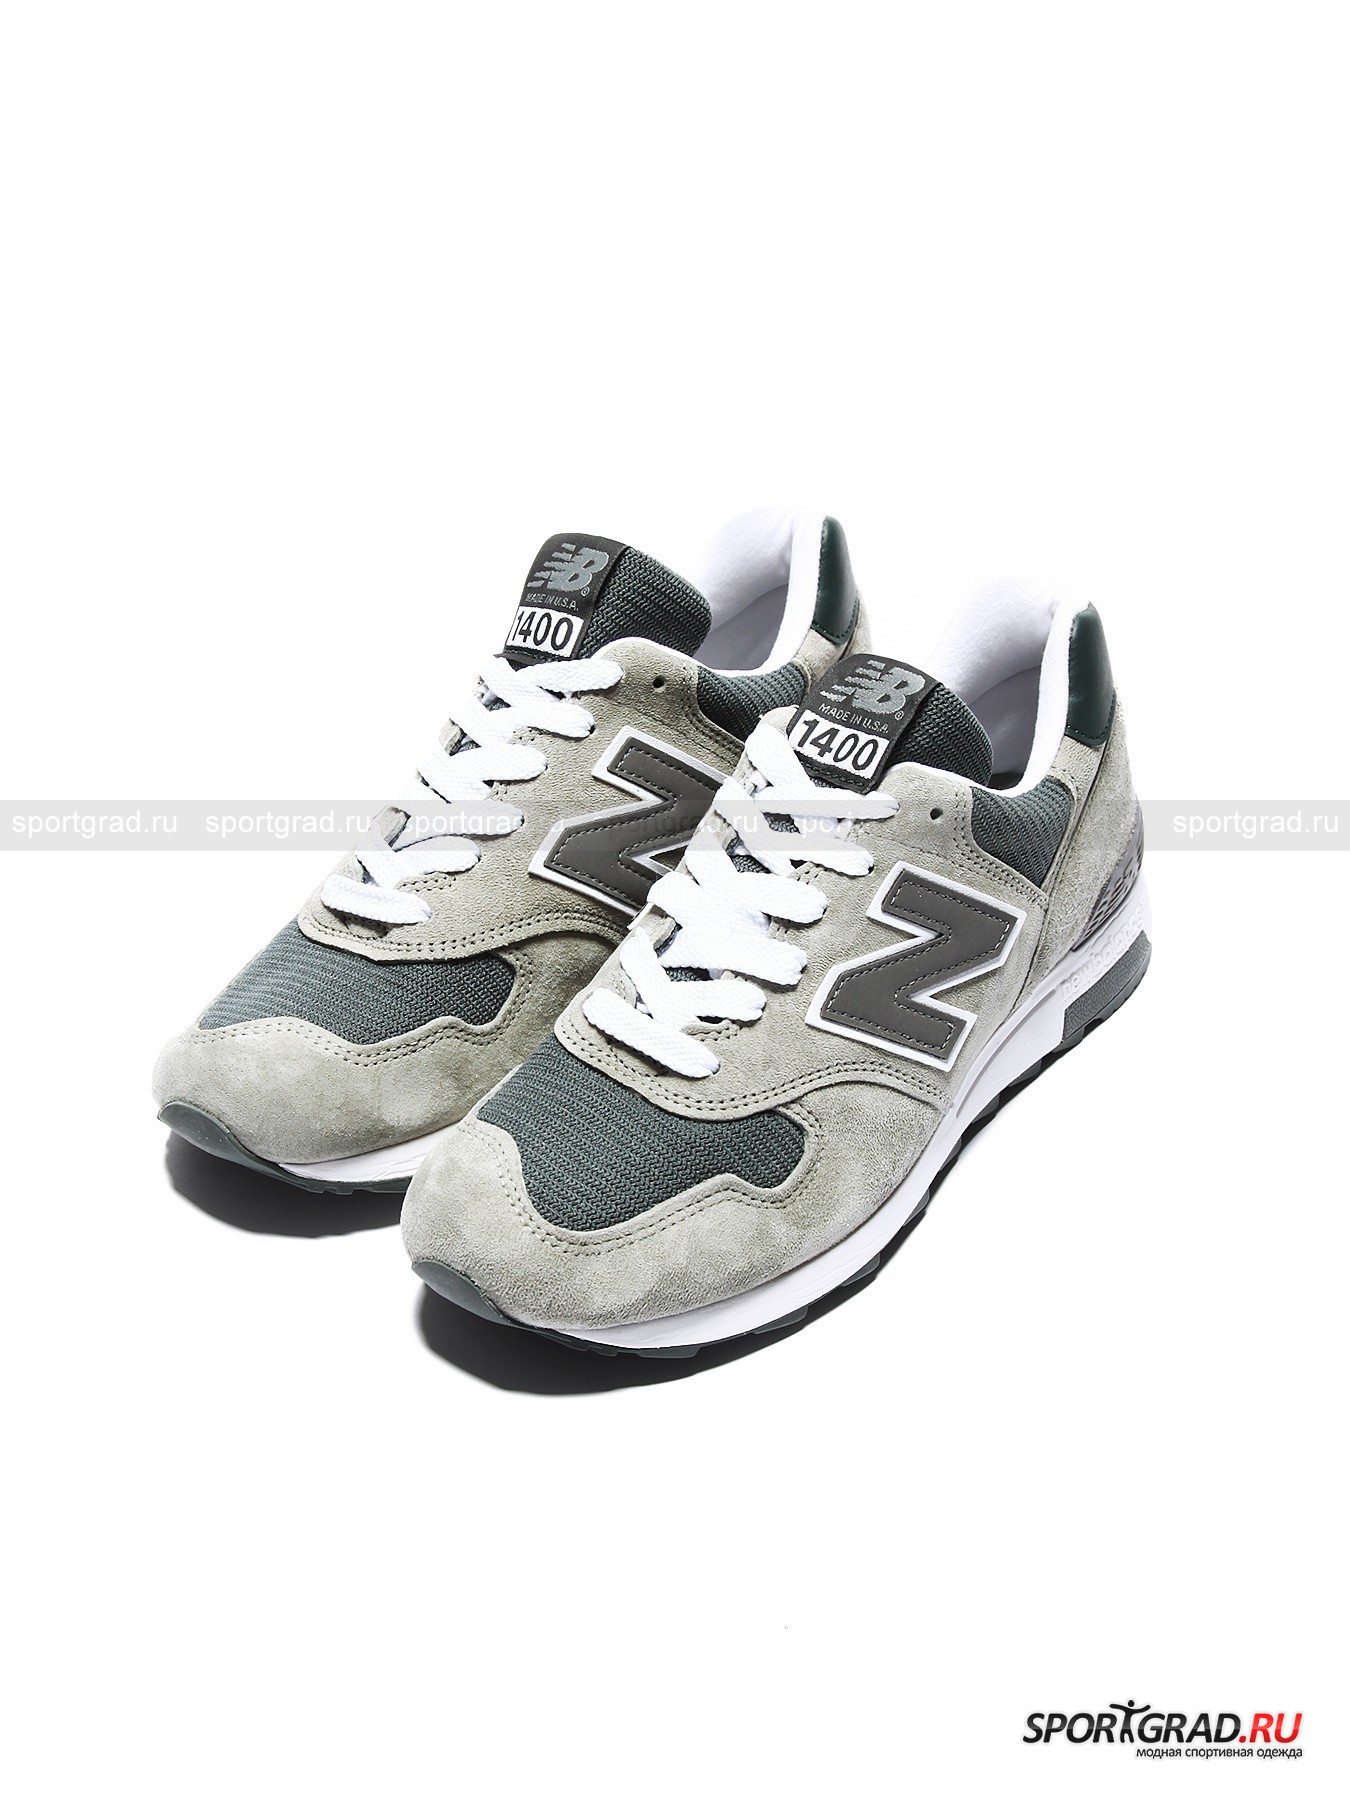 ��������� ������� 1400 Age of Exploration NEW BALANCE Made in USA